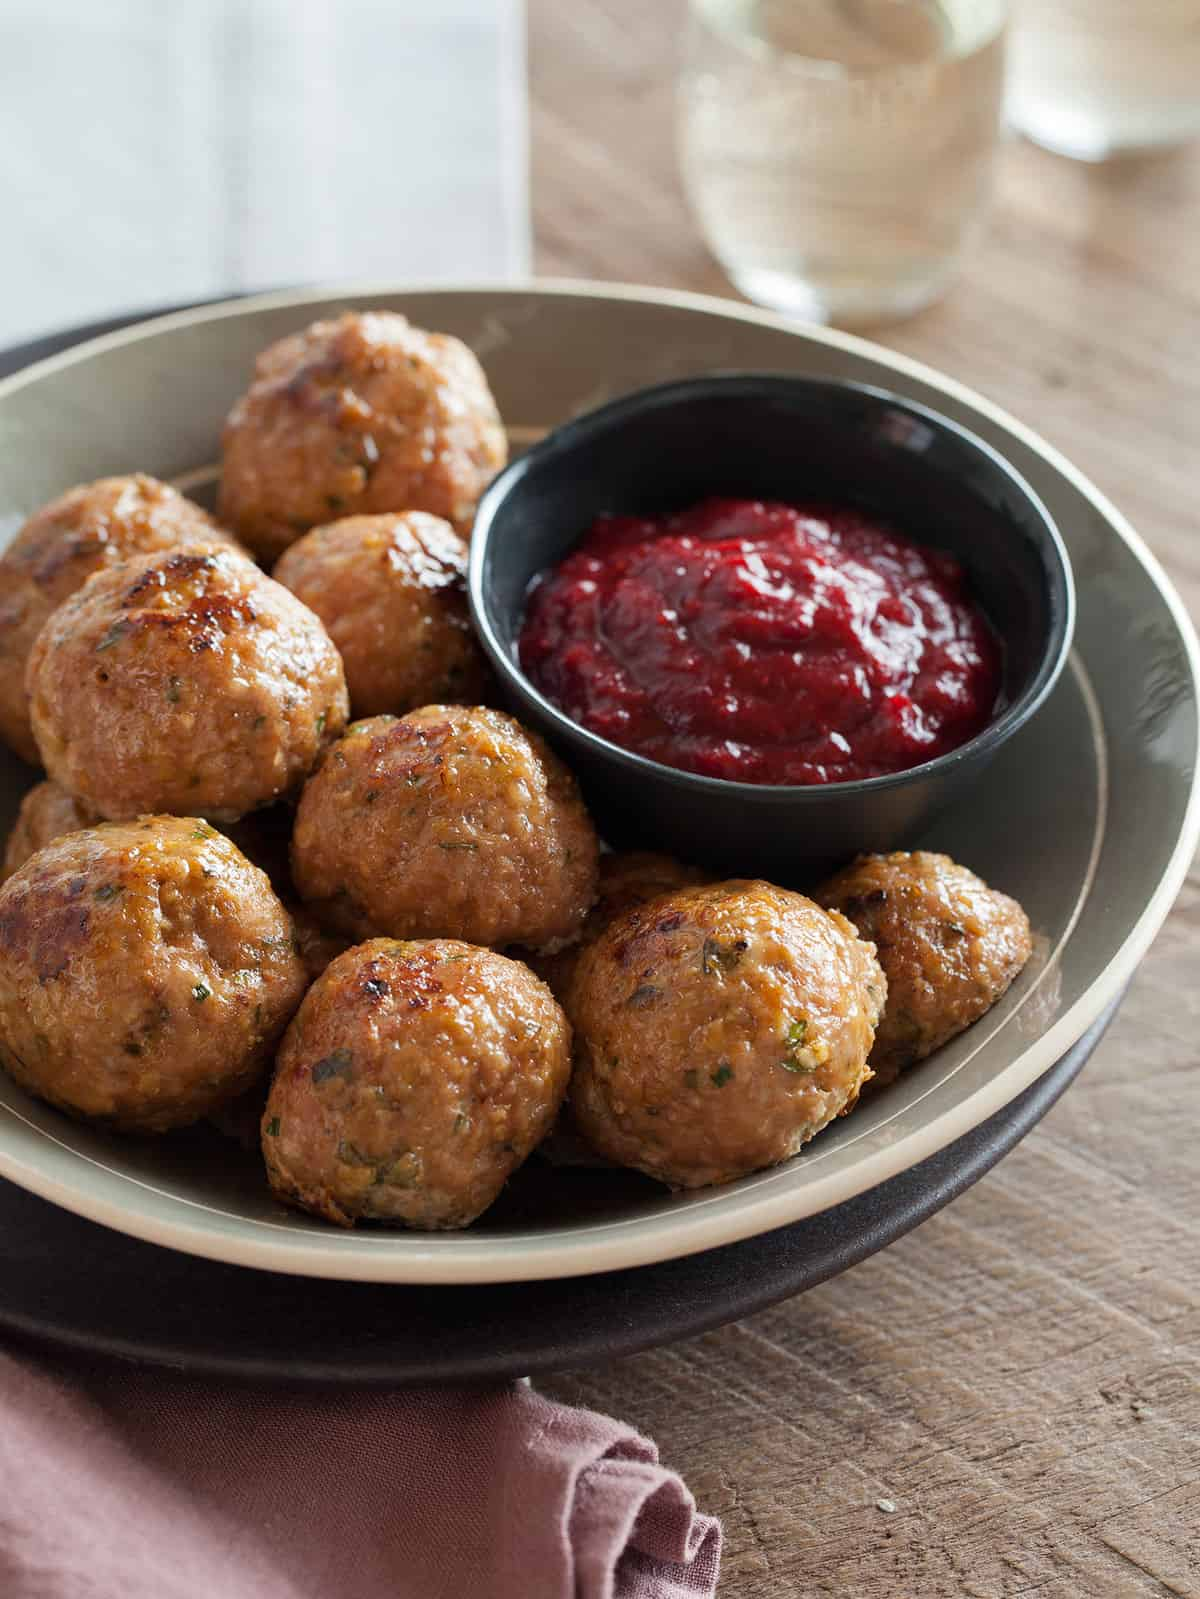 Herbed Turkey Meatballs and Cranberry Barbeque Sauce recipe